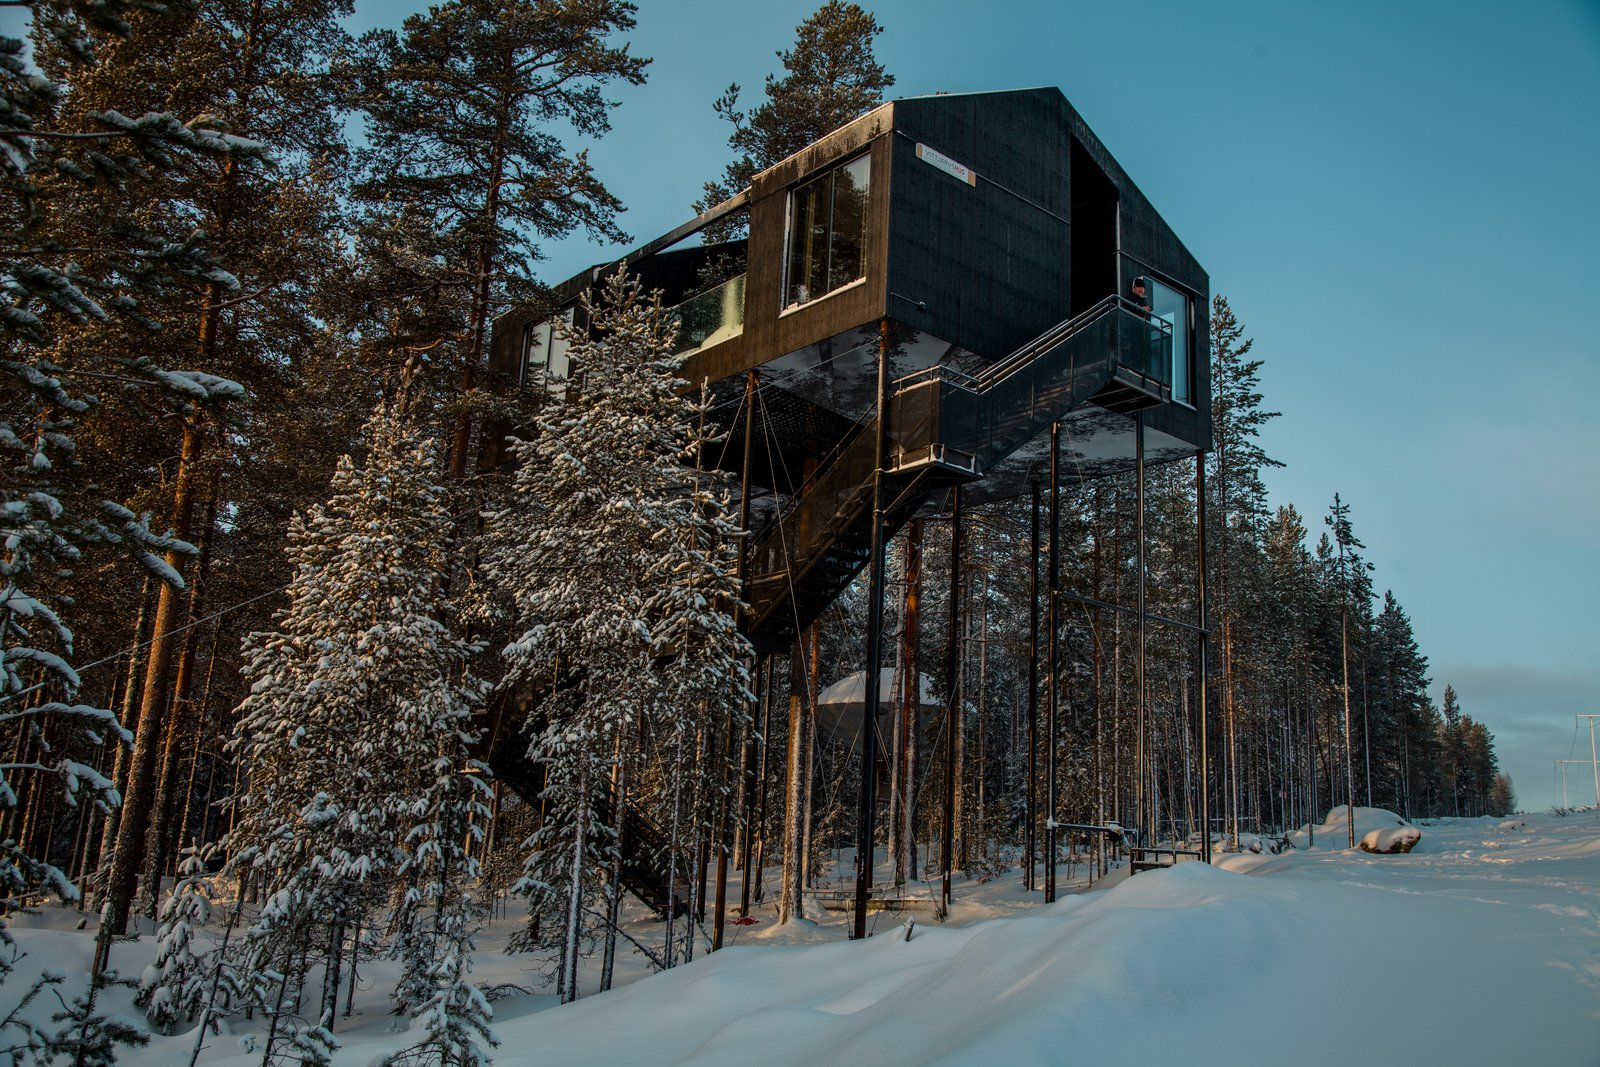 As guests approach the cabin from a distance, their view of the structure becomes gradually obscured until the only façade visible is that of the bottom, which bears a print of a pine tree canopy.